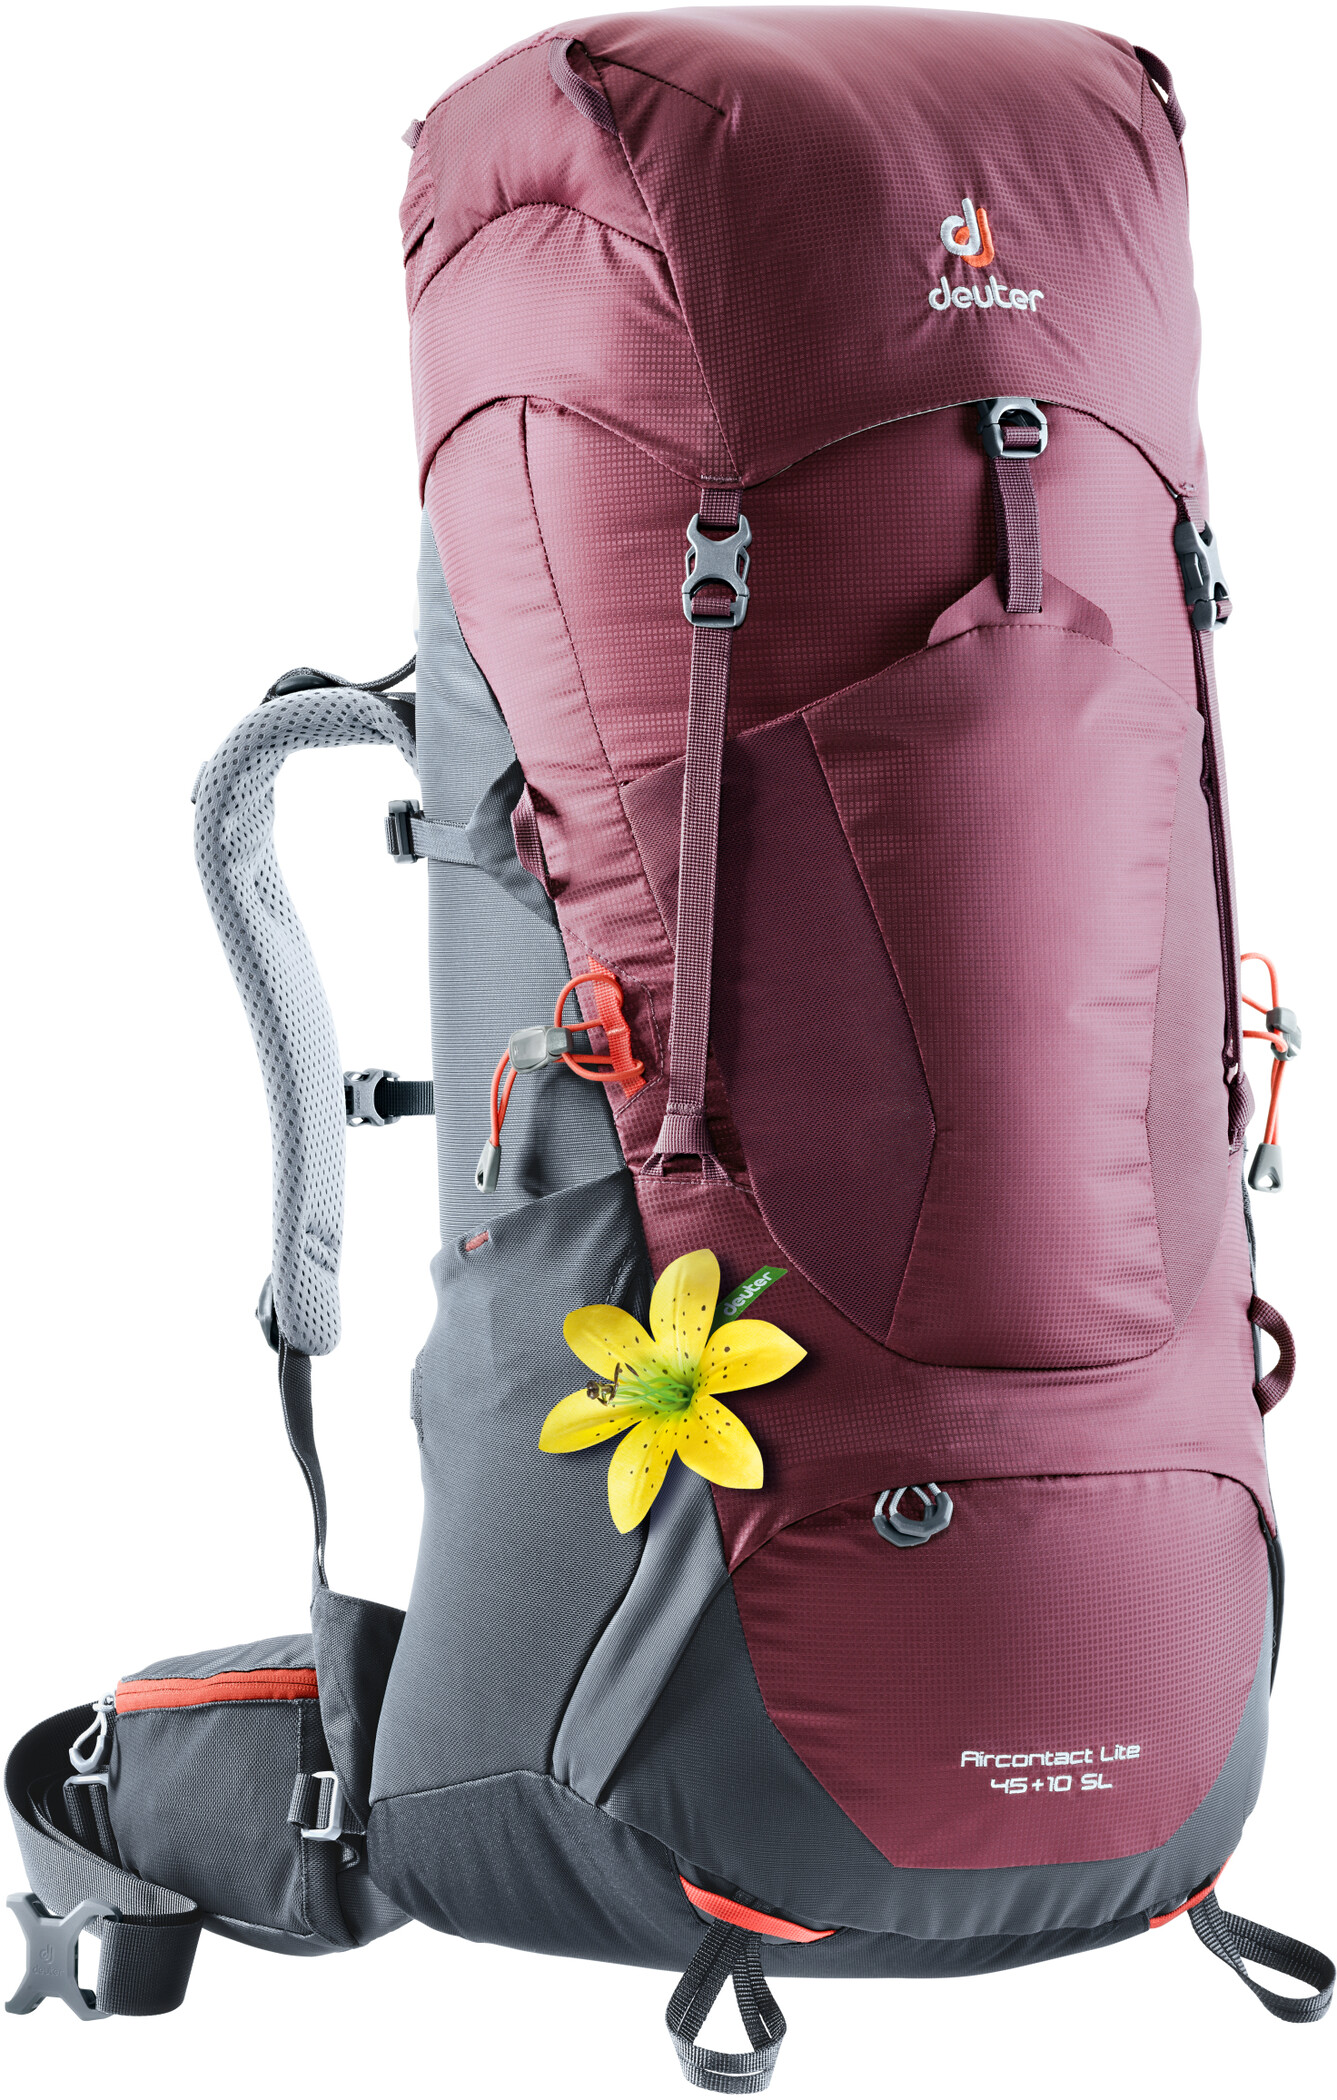 dcd5878d29 https://www.campz.de/deuter-aircontact-lite-35-10-sl-backpack-women ...